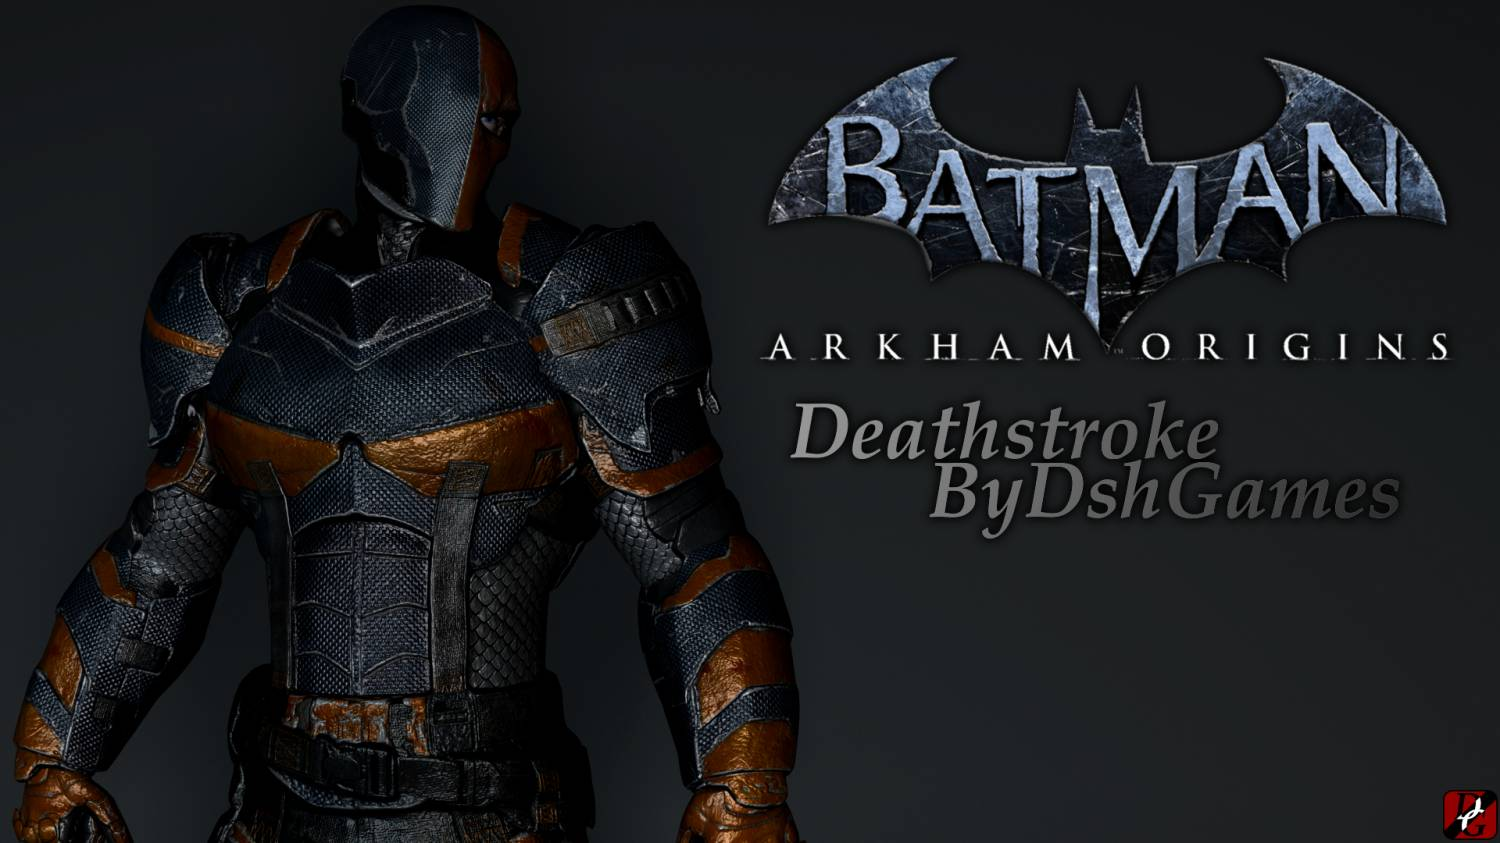 Deathstroke gta